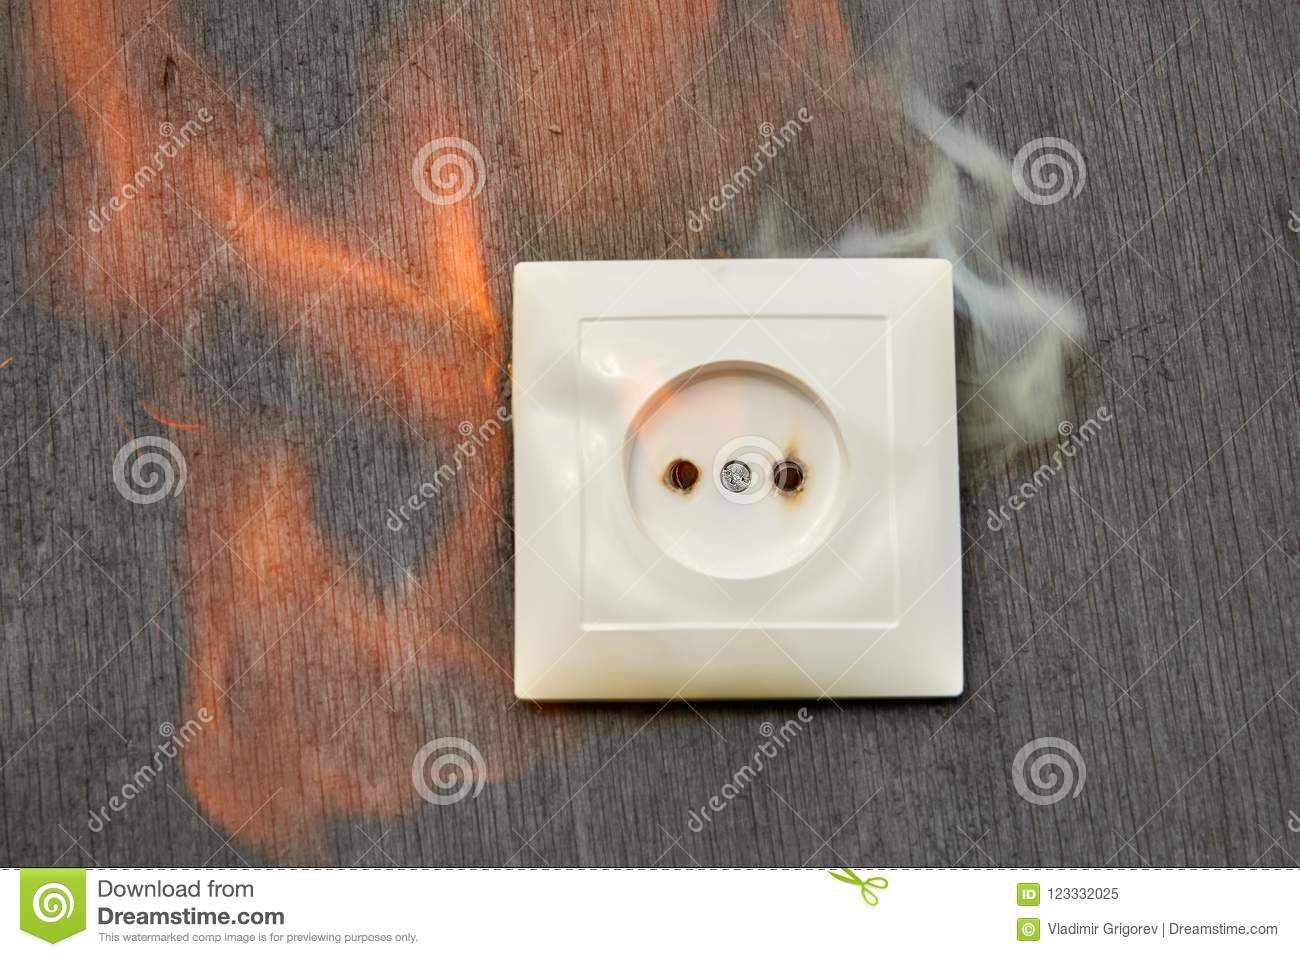 Defective Wiring Fire Plastic Wall Outlet Stock Image Of A Receptacle